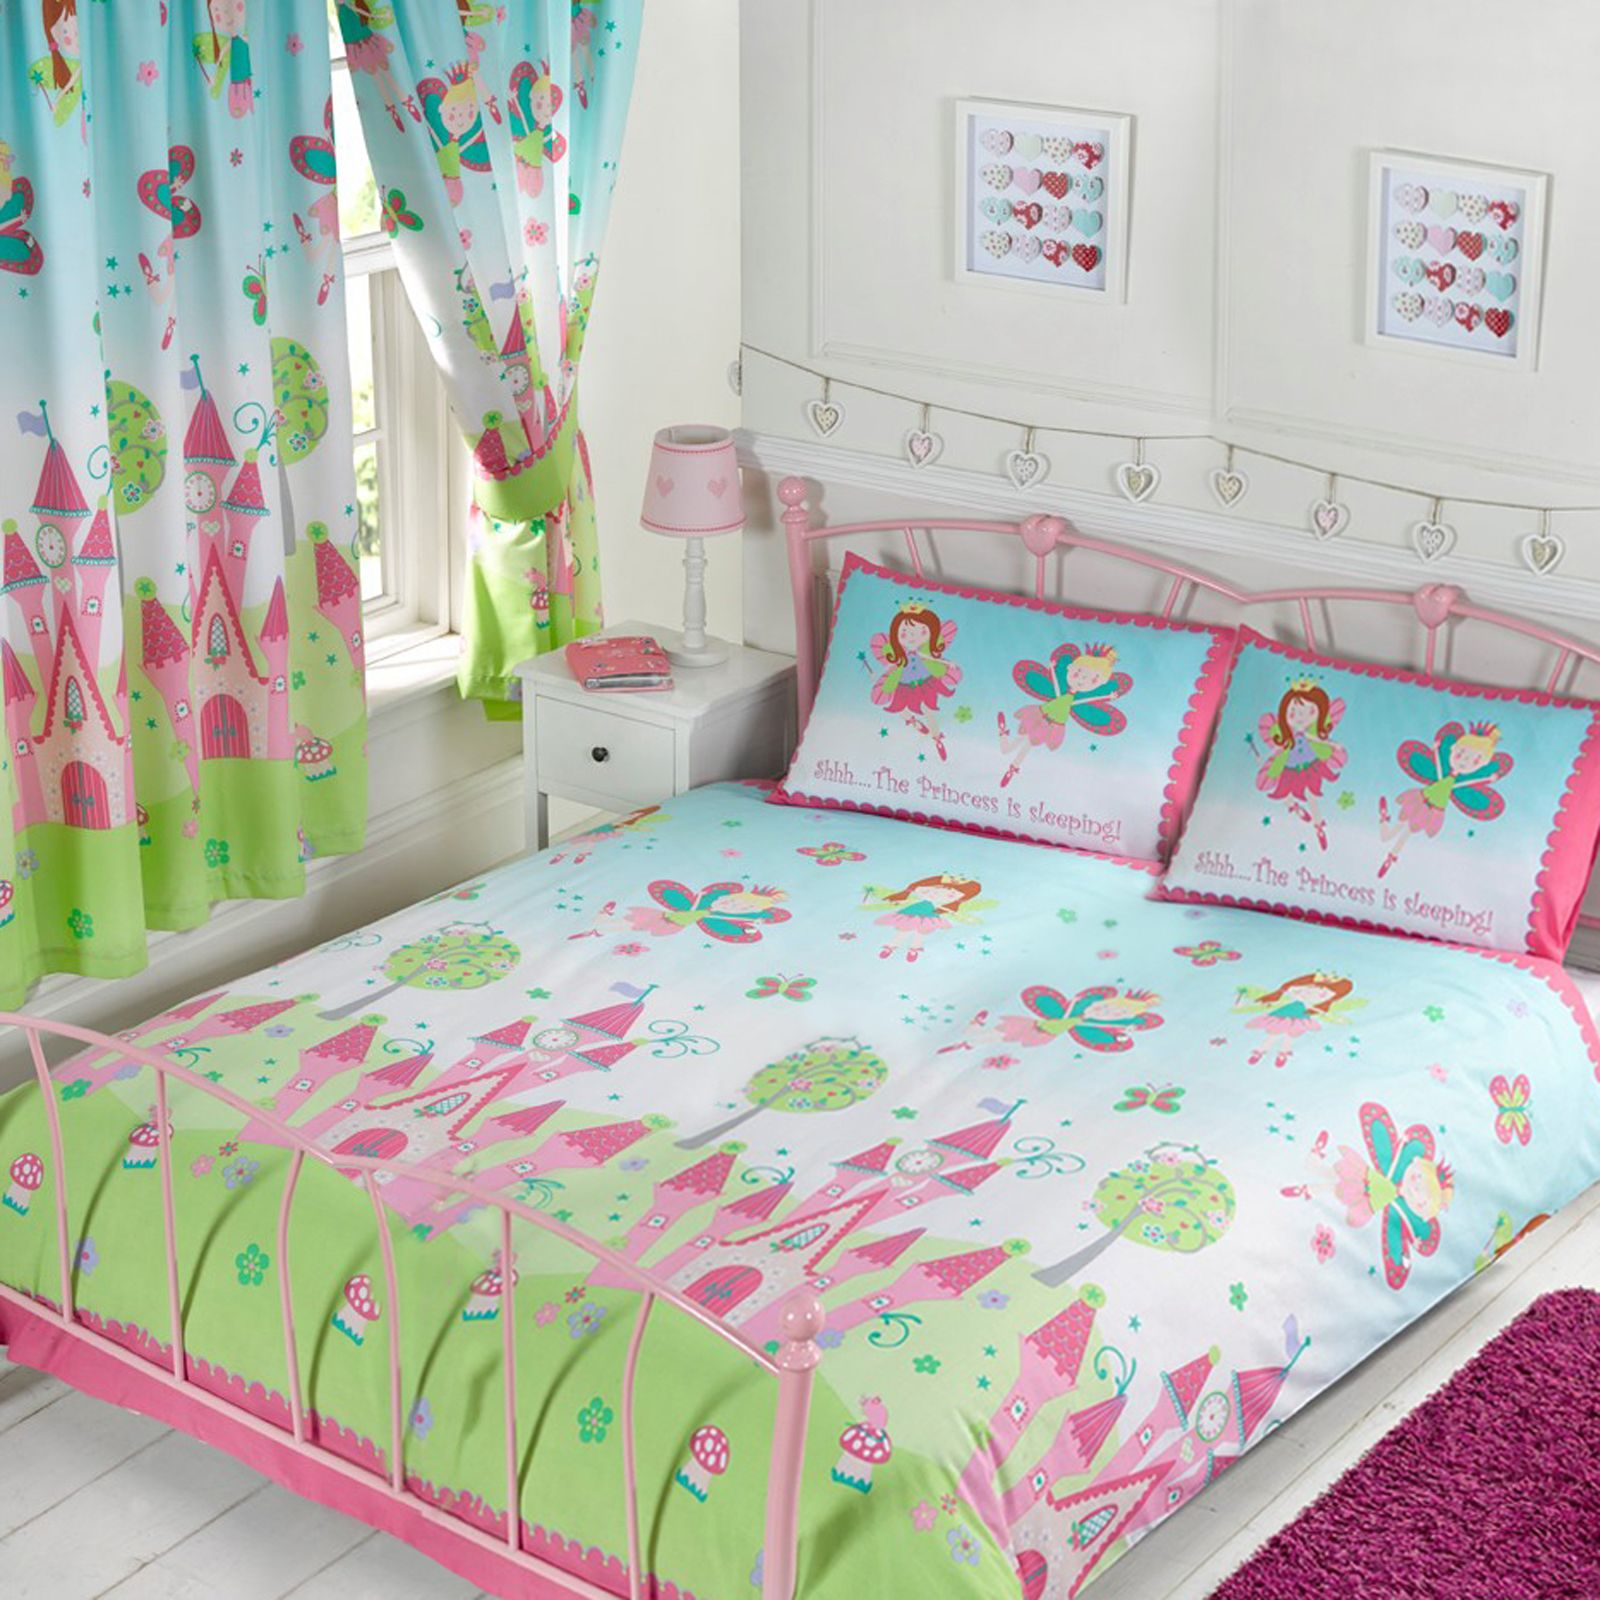 GIRLS DOUBLE DUVET COVER SETS UNICORNS BUTTERFLIES OWLS PUG